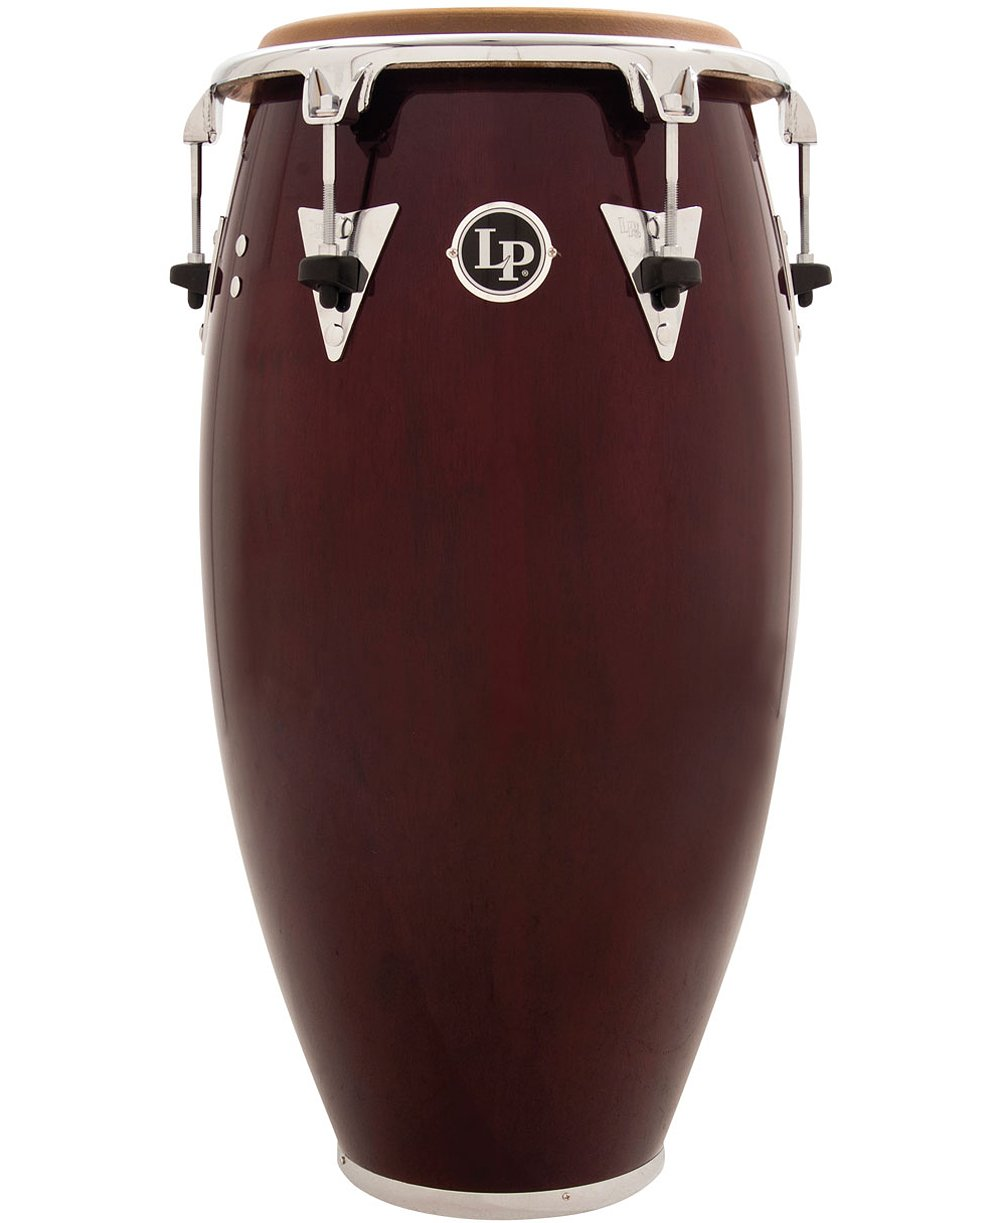 Latin Percussion LP Classic Top-Tuning 12-1/2 Tumba - Dark Wood/Chrome by Latin Percussion